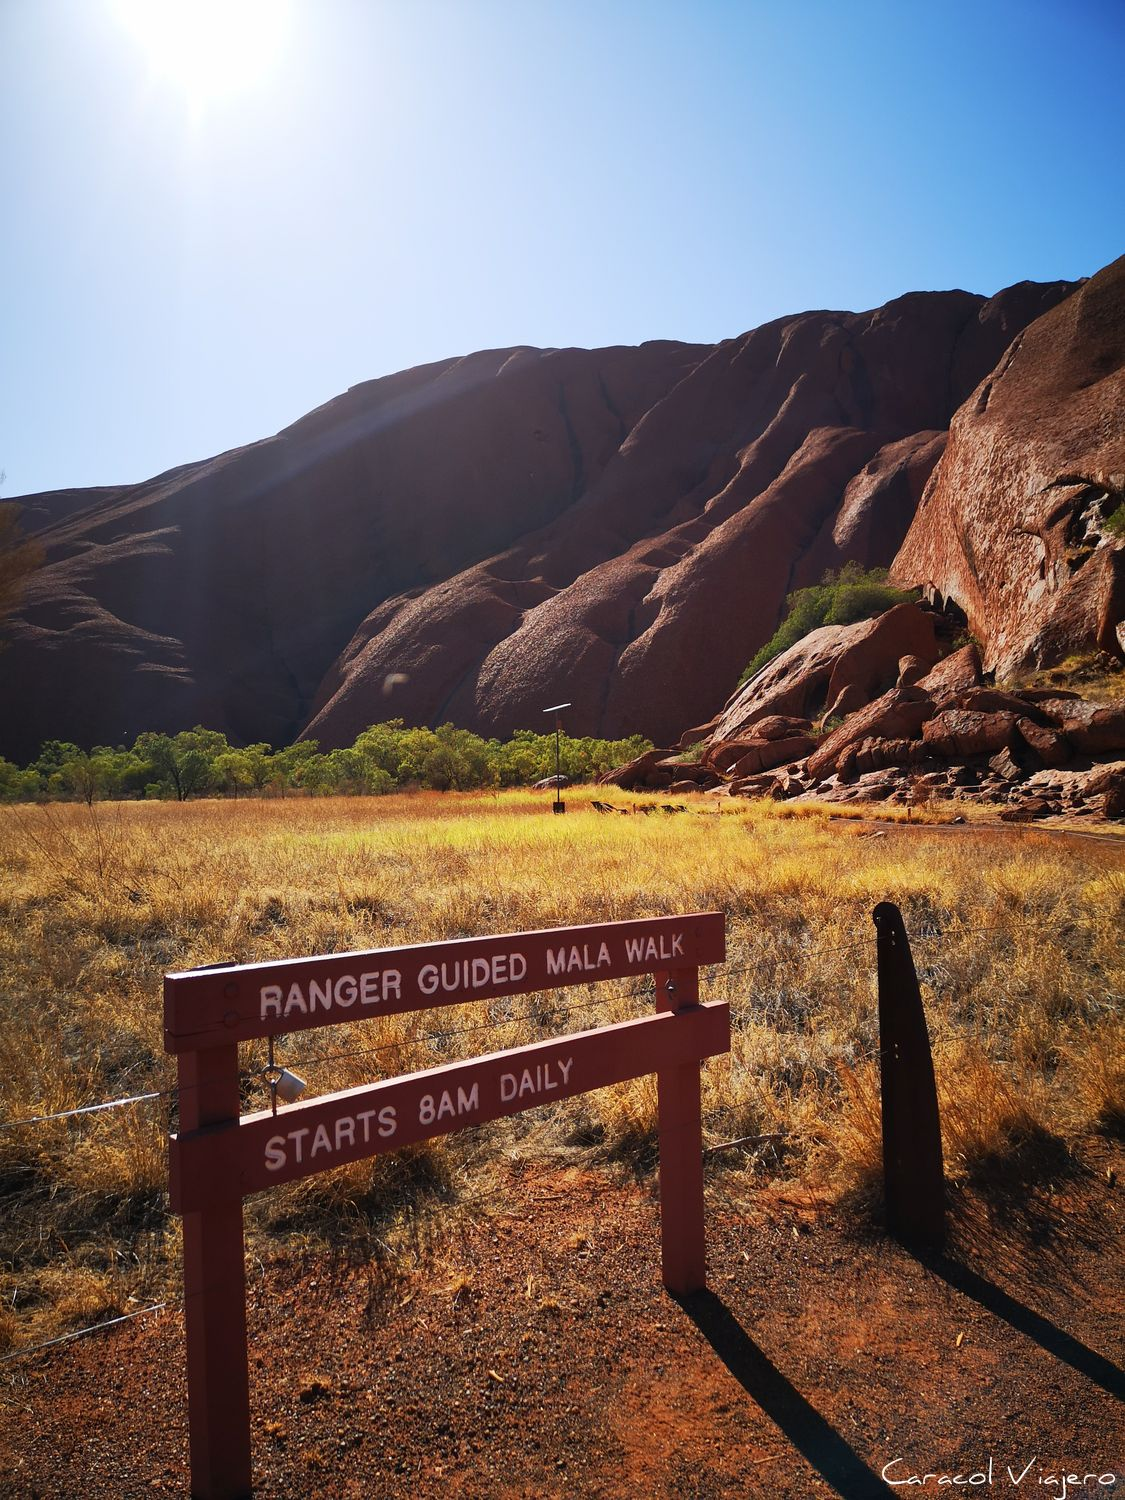 Meeting point uluru